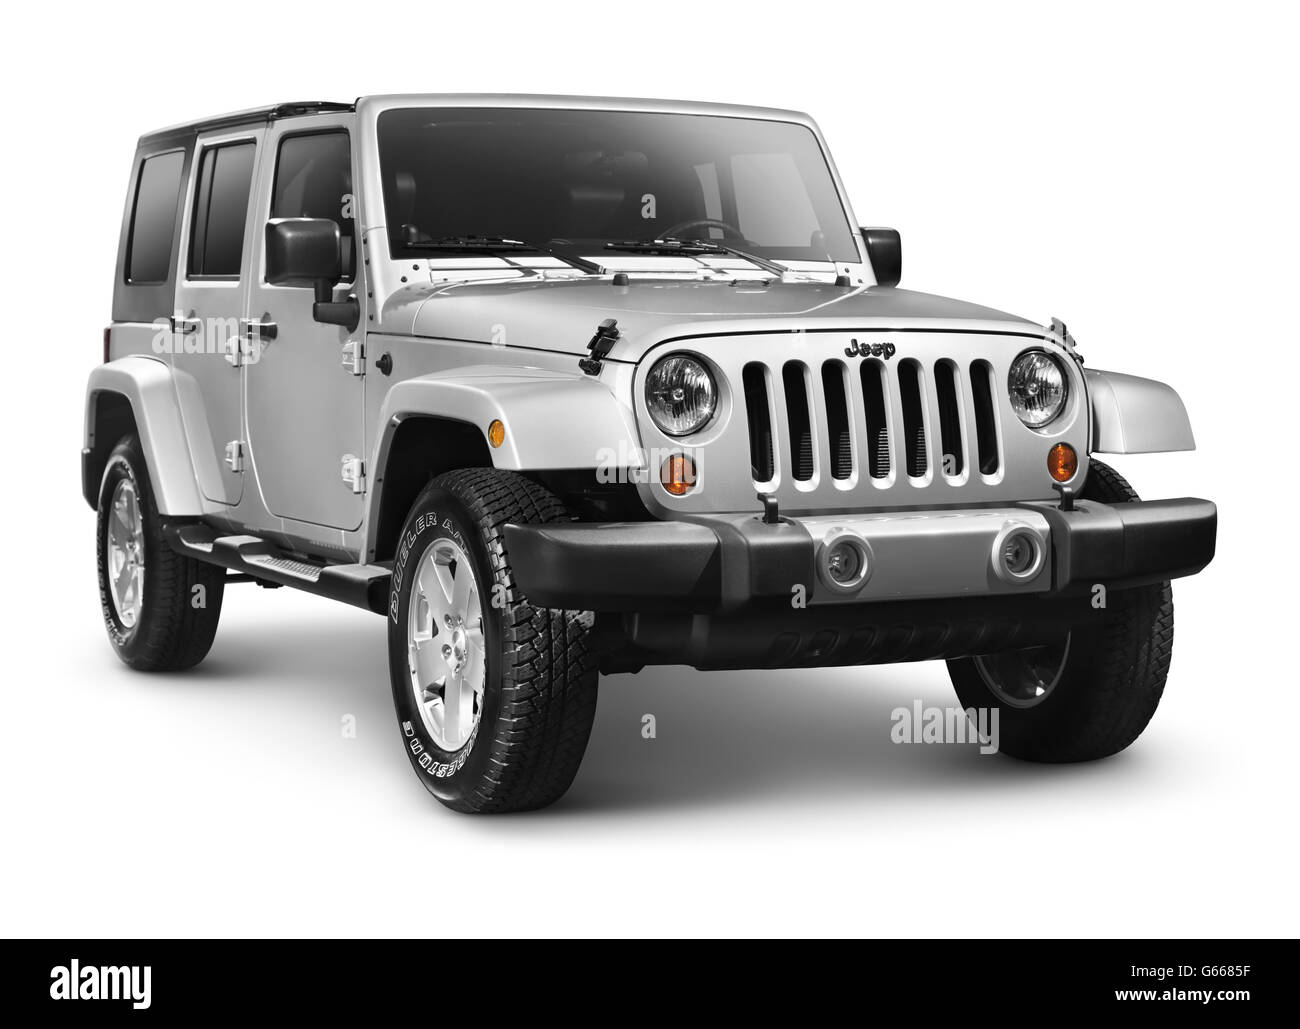 100805bde Silver 2011 Jeep Wrangler Unlimited Sahara 4x4 SUV - Stock Image